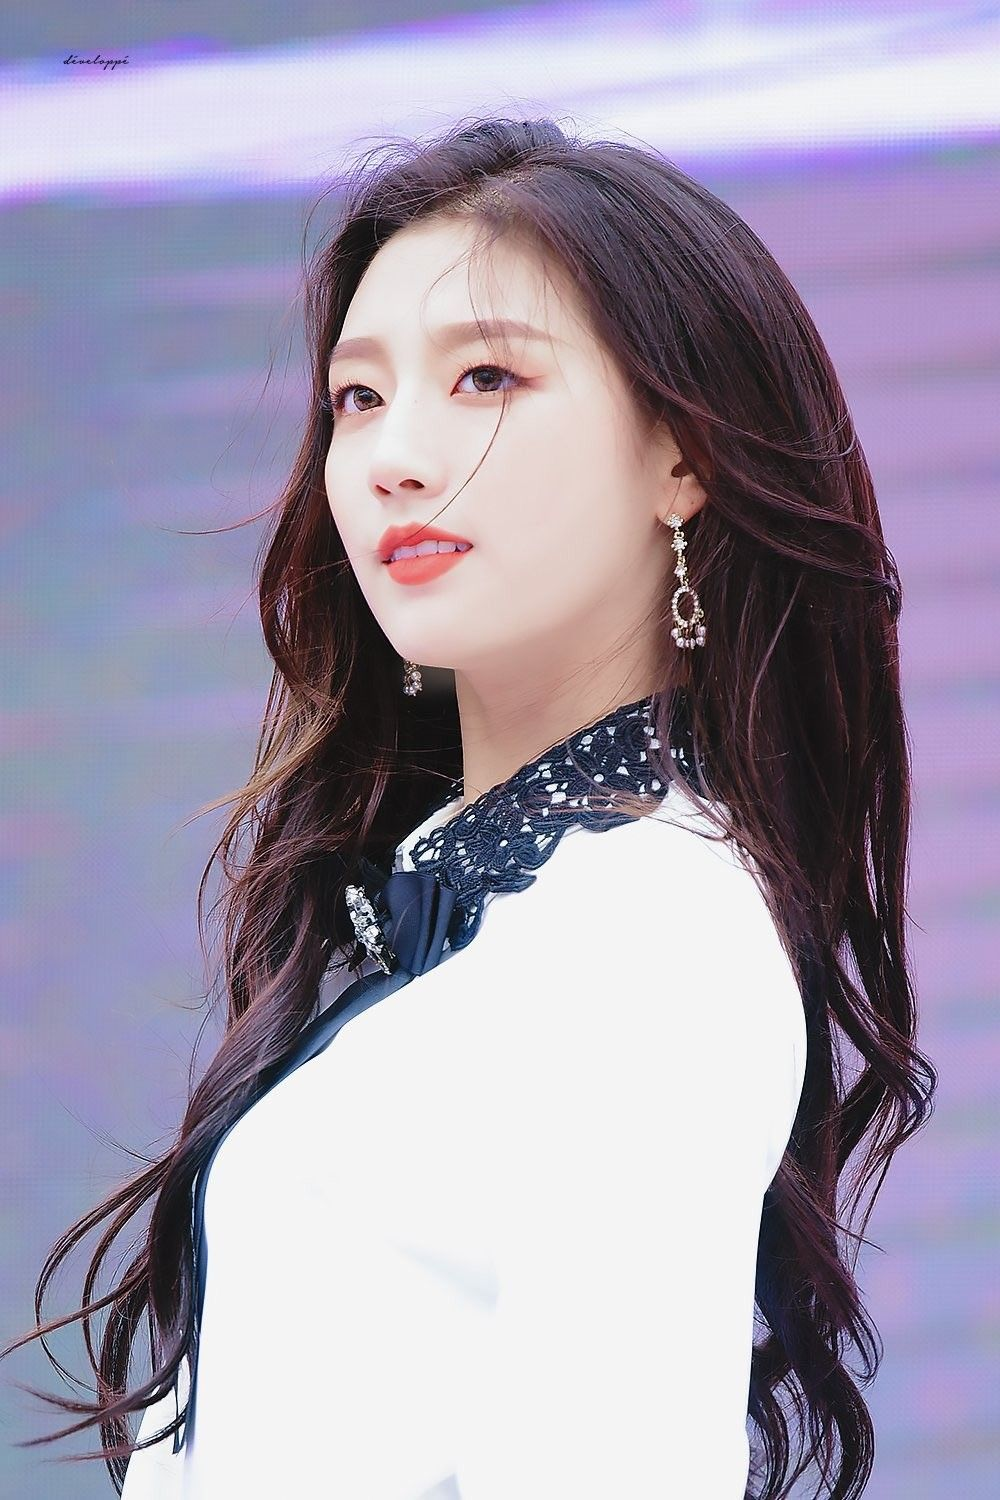 Photo Was Not Mine All Credits Go To The Owner Yein Lovelyz Lovelyz Mijoo Kpop Girls